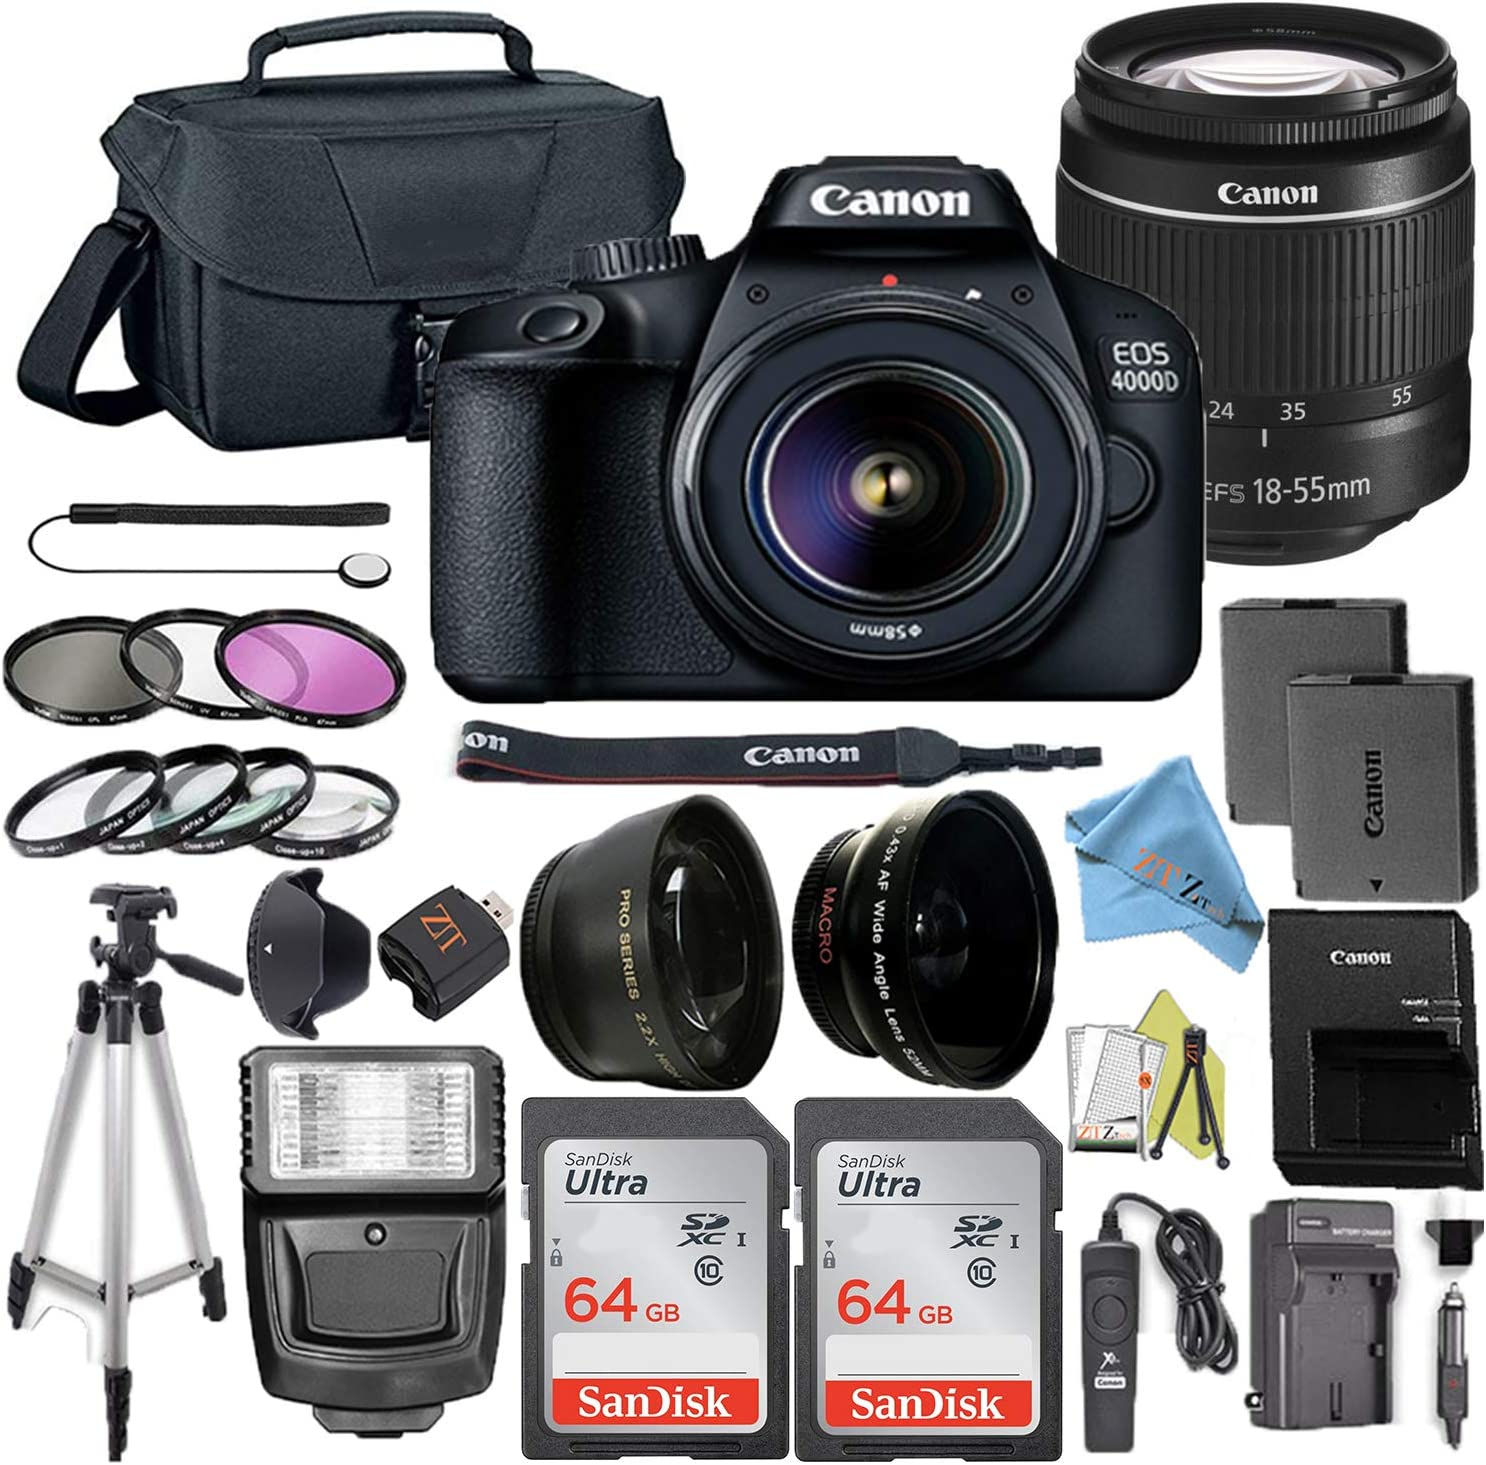 Canon EOS Rebel T100 / 4000D DSLR Camera Bundle with Canon EF-S 18-55mm Lens + 2pc 64GB SanDisk Memory Cards + Accessory Kit (18-55MM + 64GB)